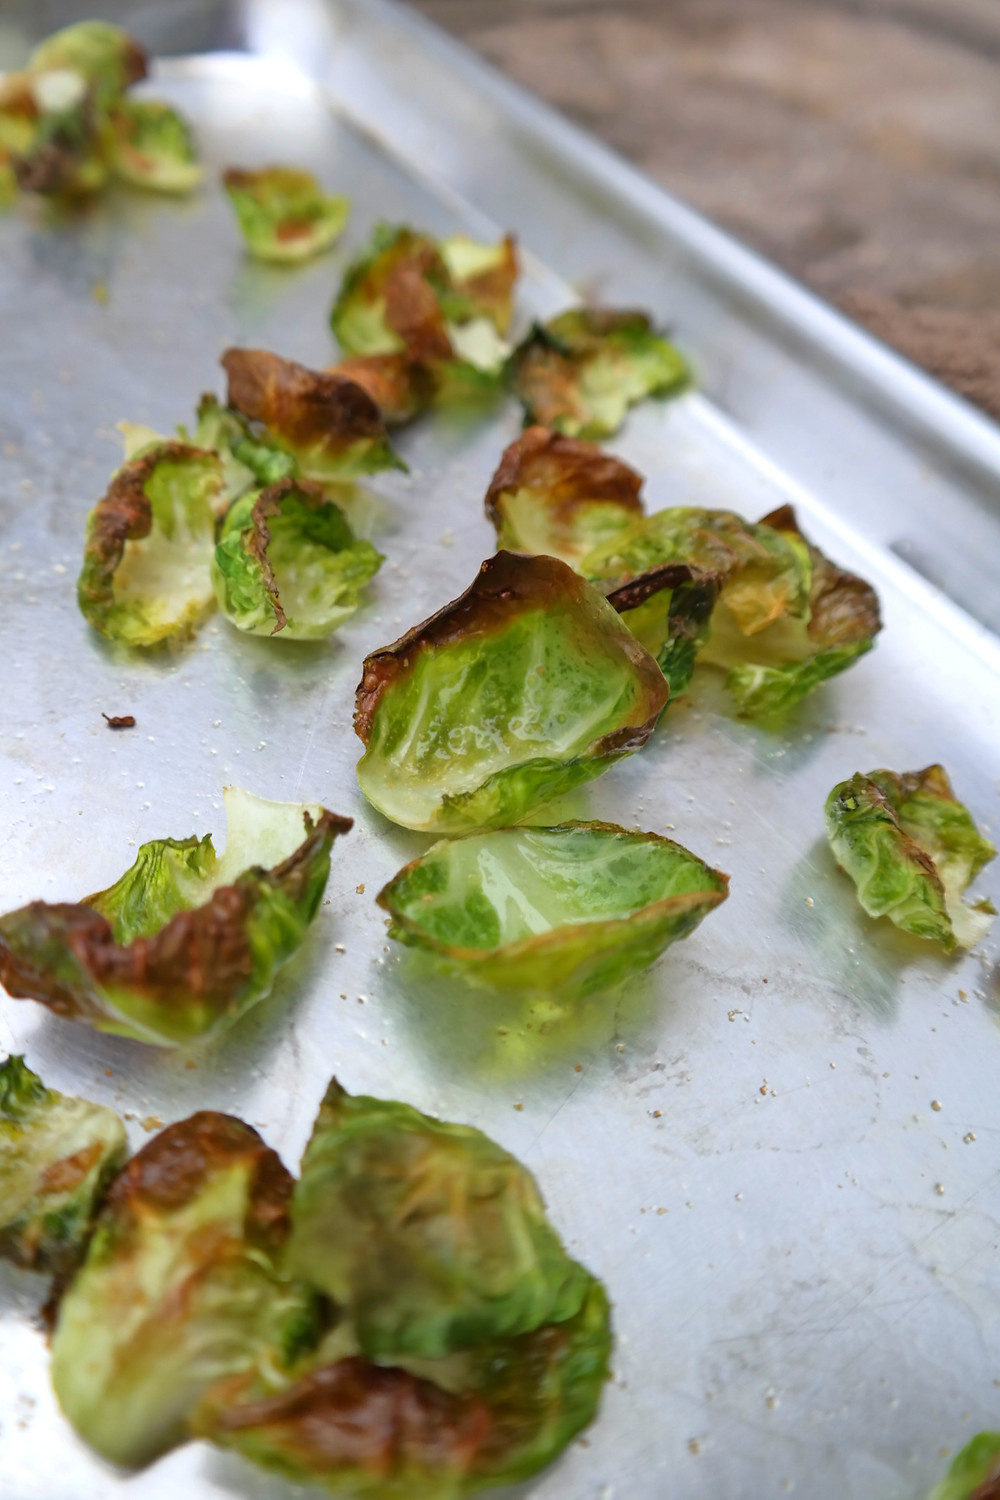 Brussel-Chips with Garlic Seasoning | eatlovegarlic.com @eatlovegarlic